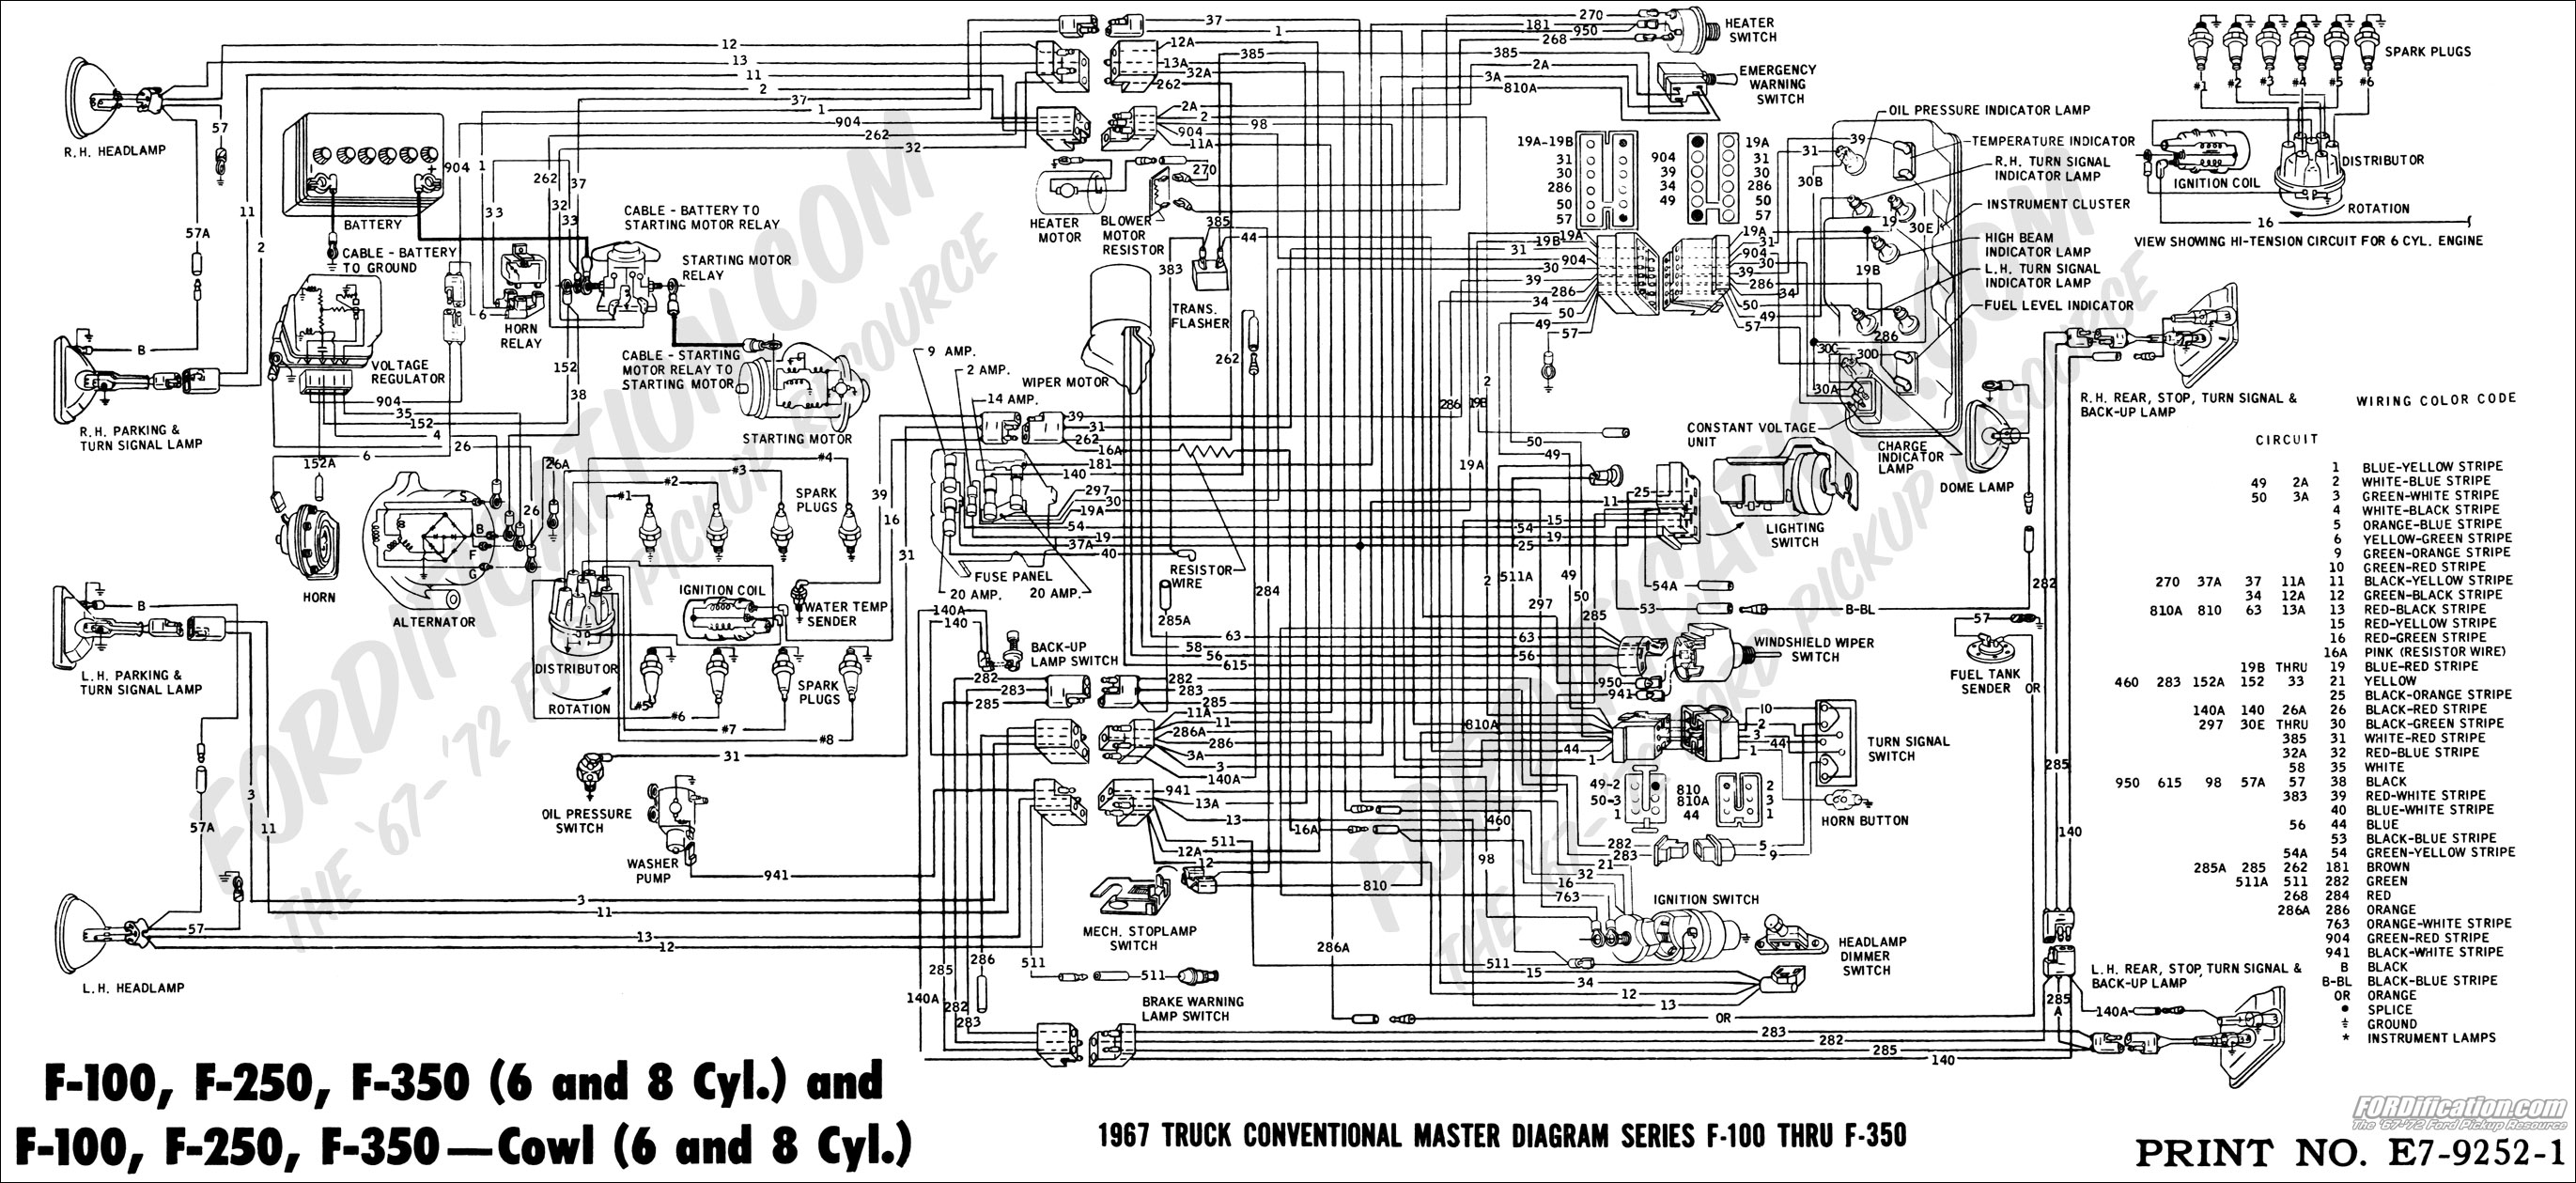 67masterdiagram ford truck technical drawings and schematics section h wiring ford truck radio wiring diagram at crackthecode.co